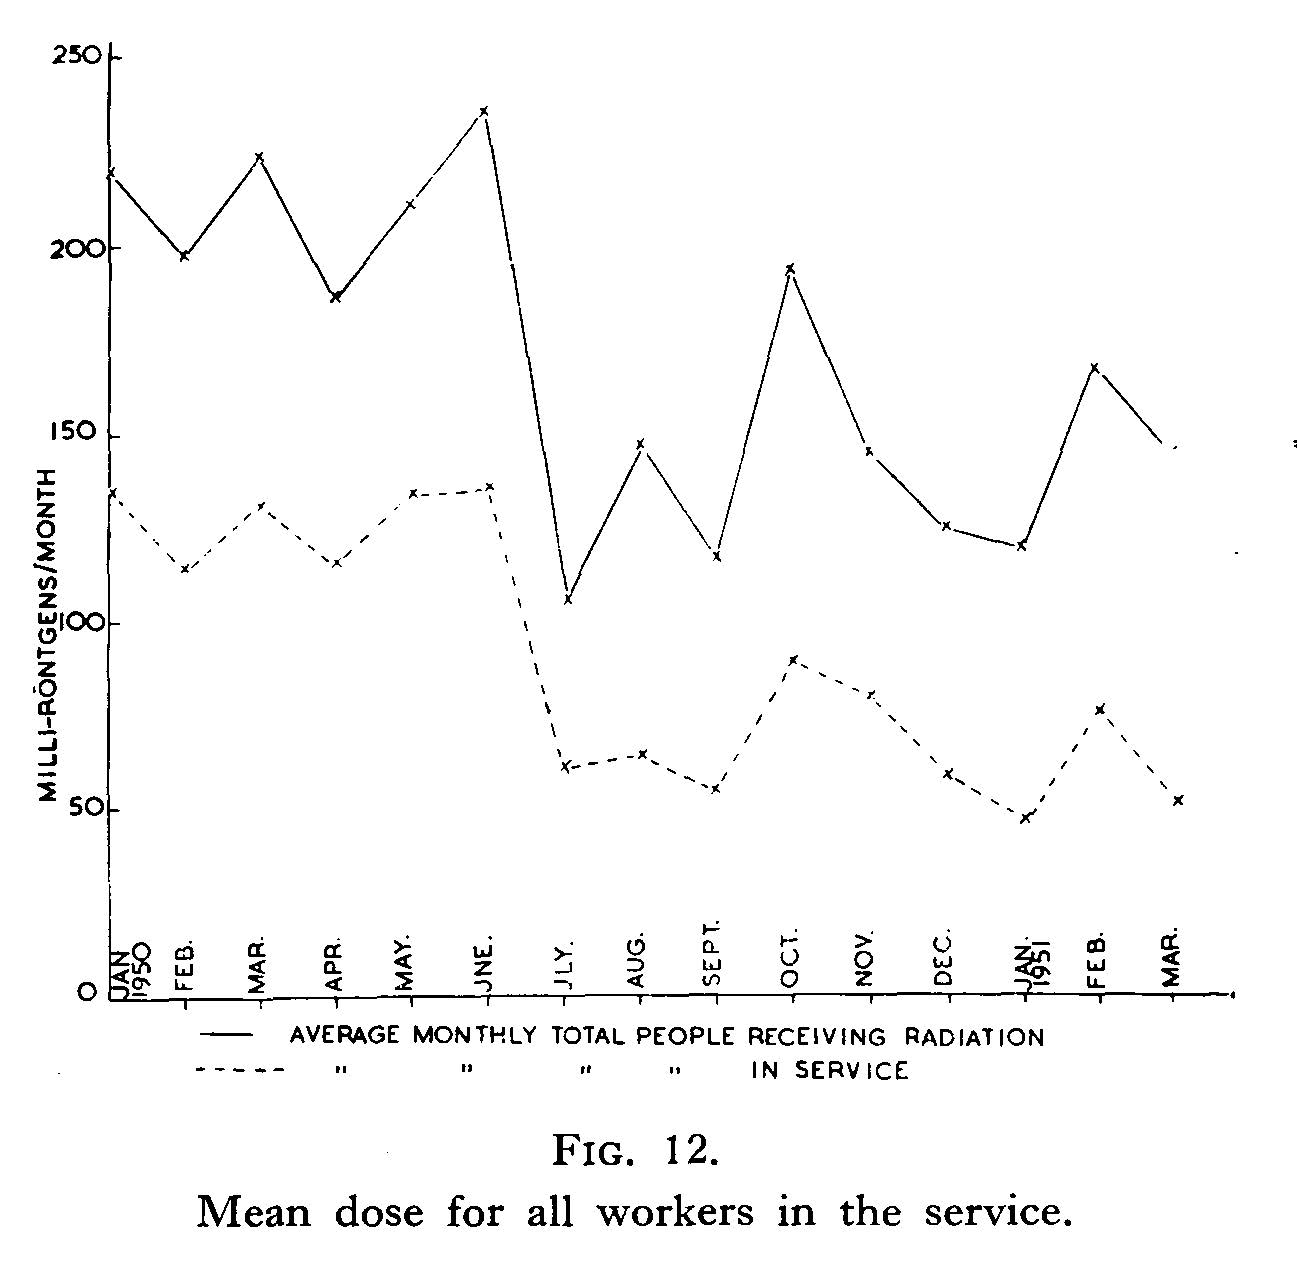 Radiation doses received by service workers 1951